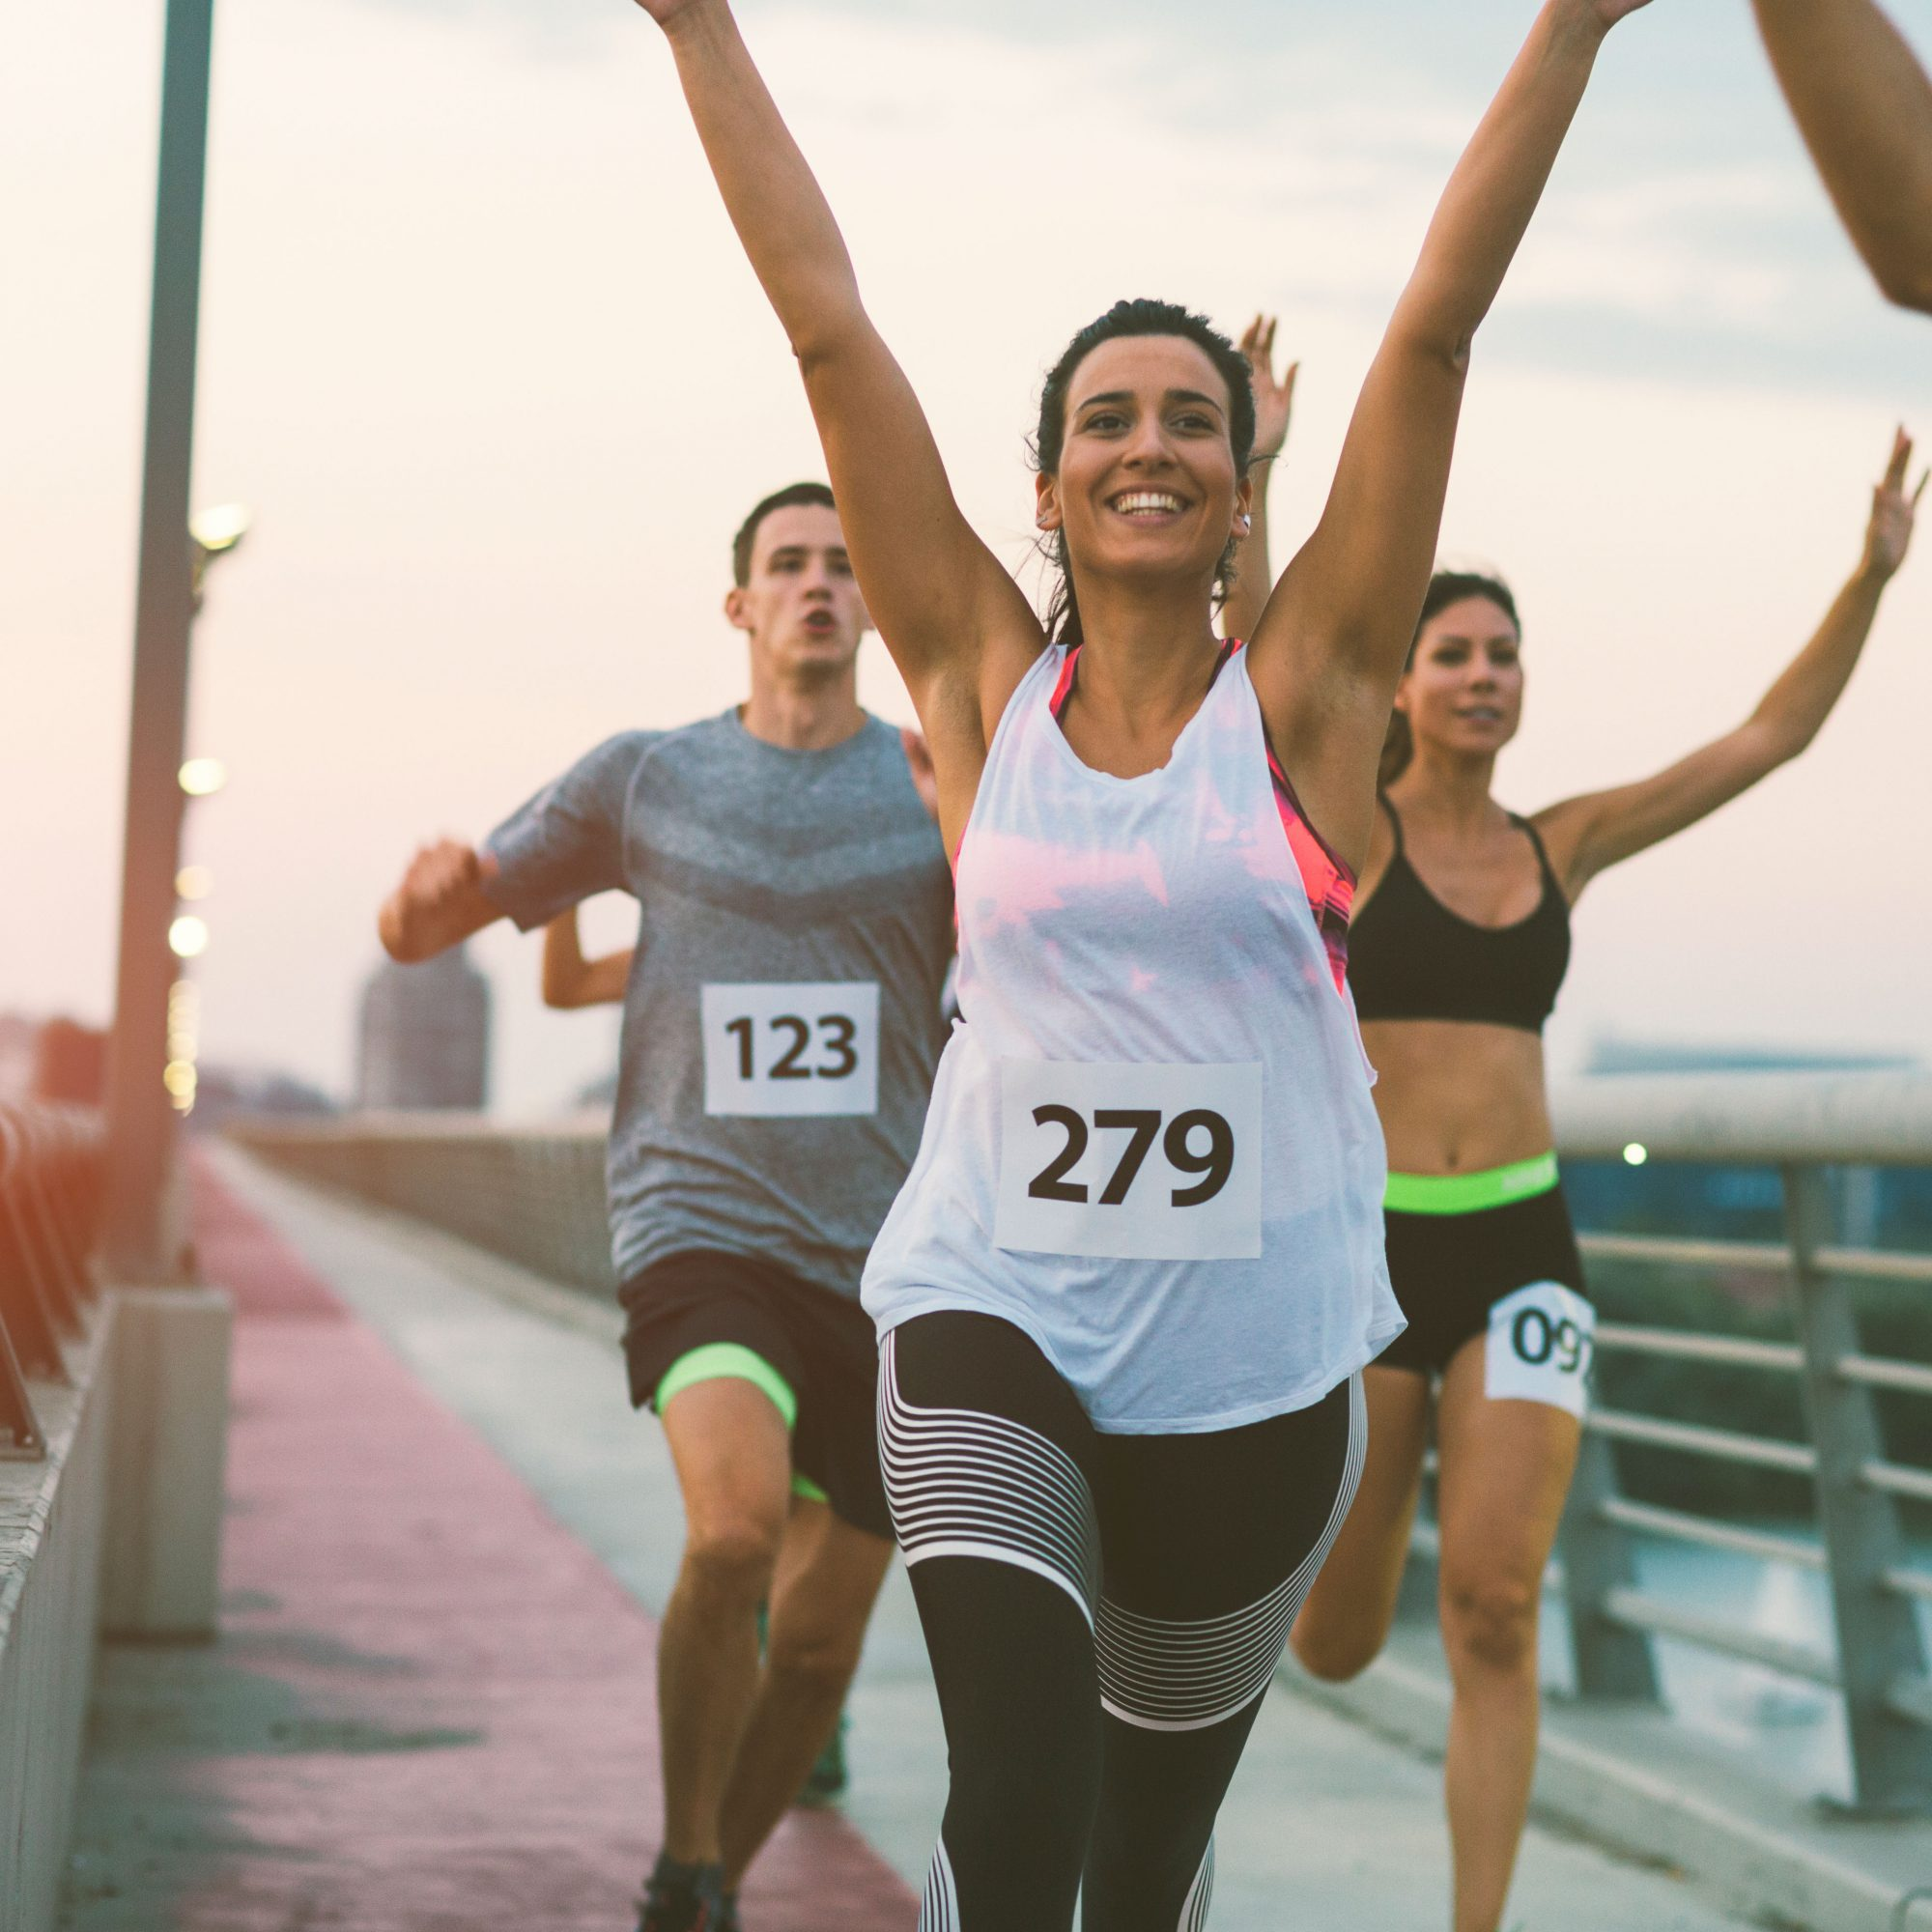 Woman_Cheering_While_Running_On_Bridge